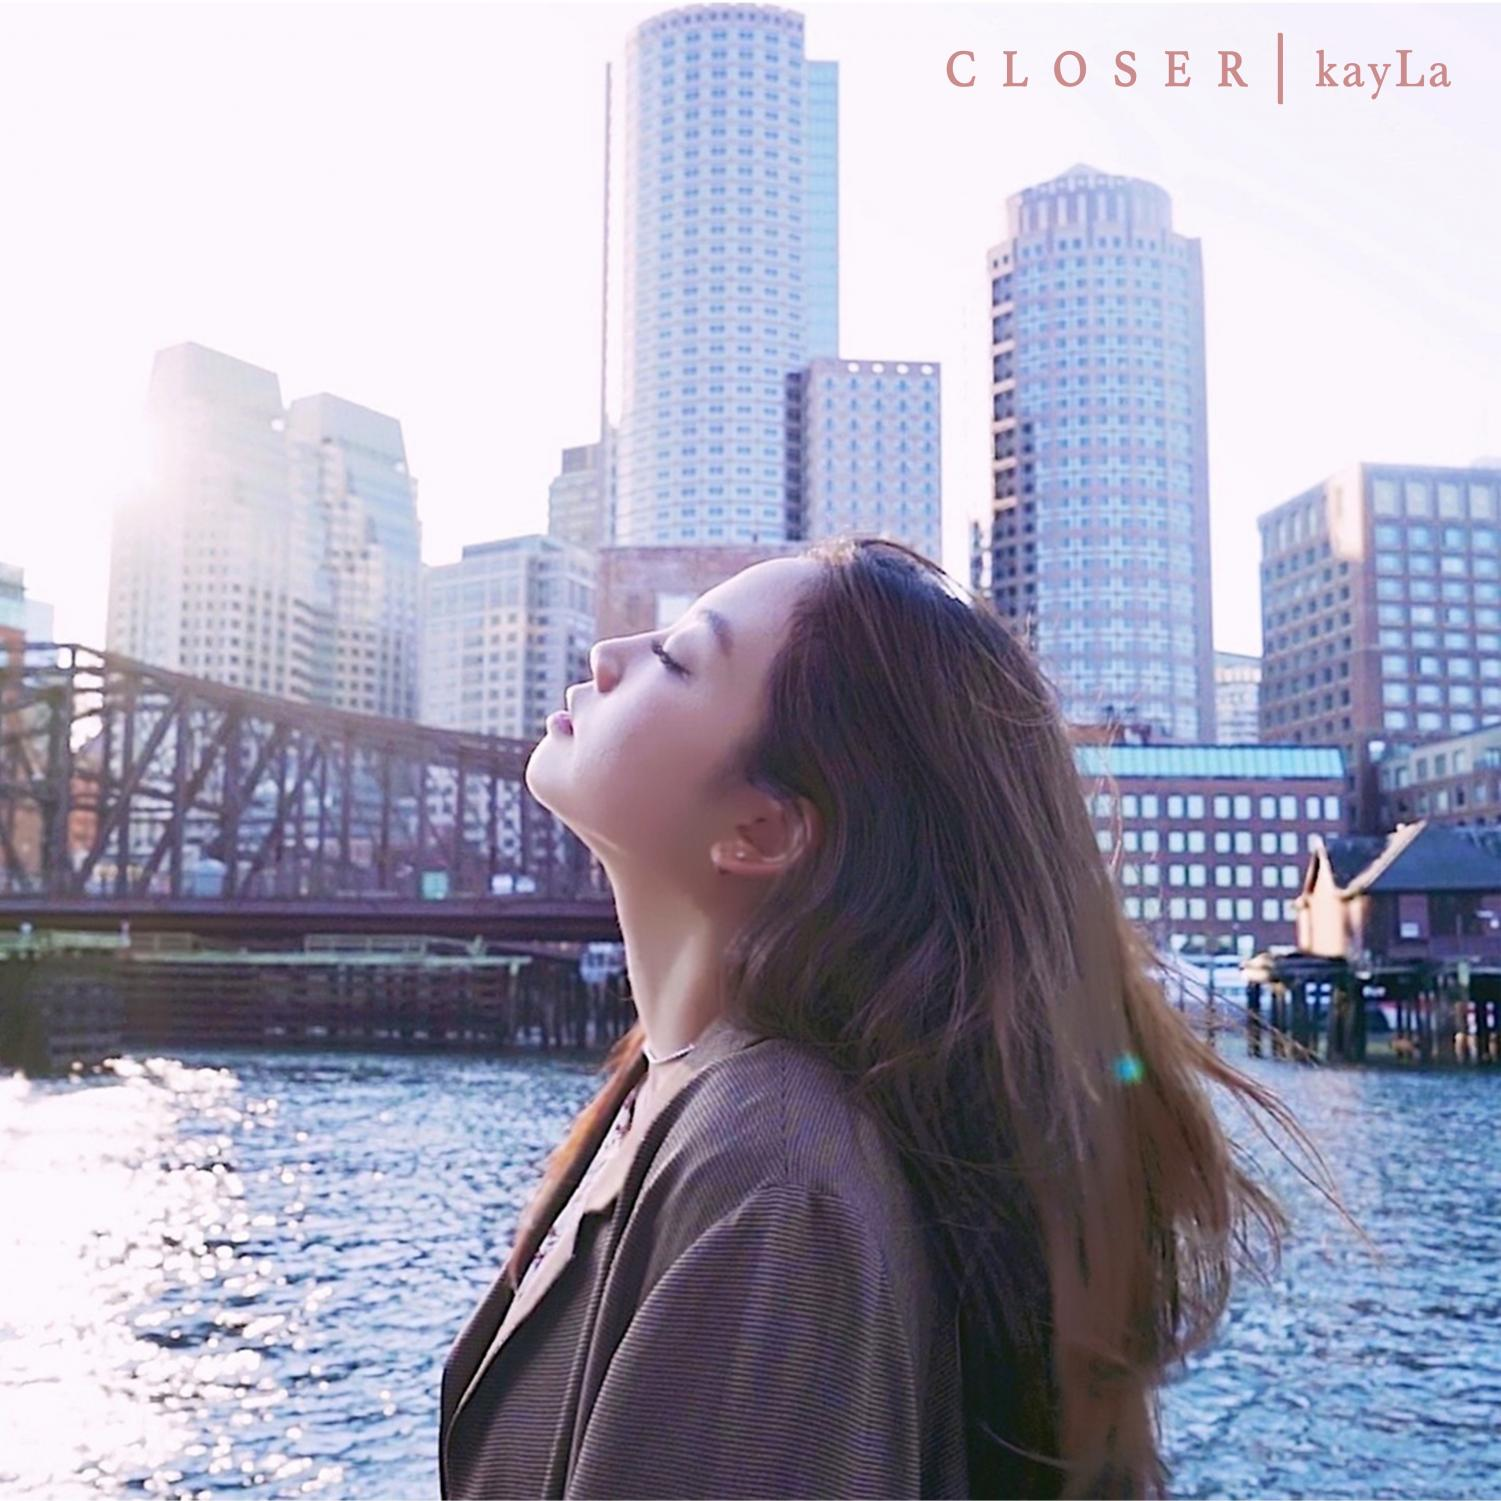 "Lee dedicates her time to writing and producing songs and music videos. Her new single, ""Closer,"" whose album cover is featured above, was released on Nov. 11."